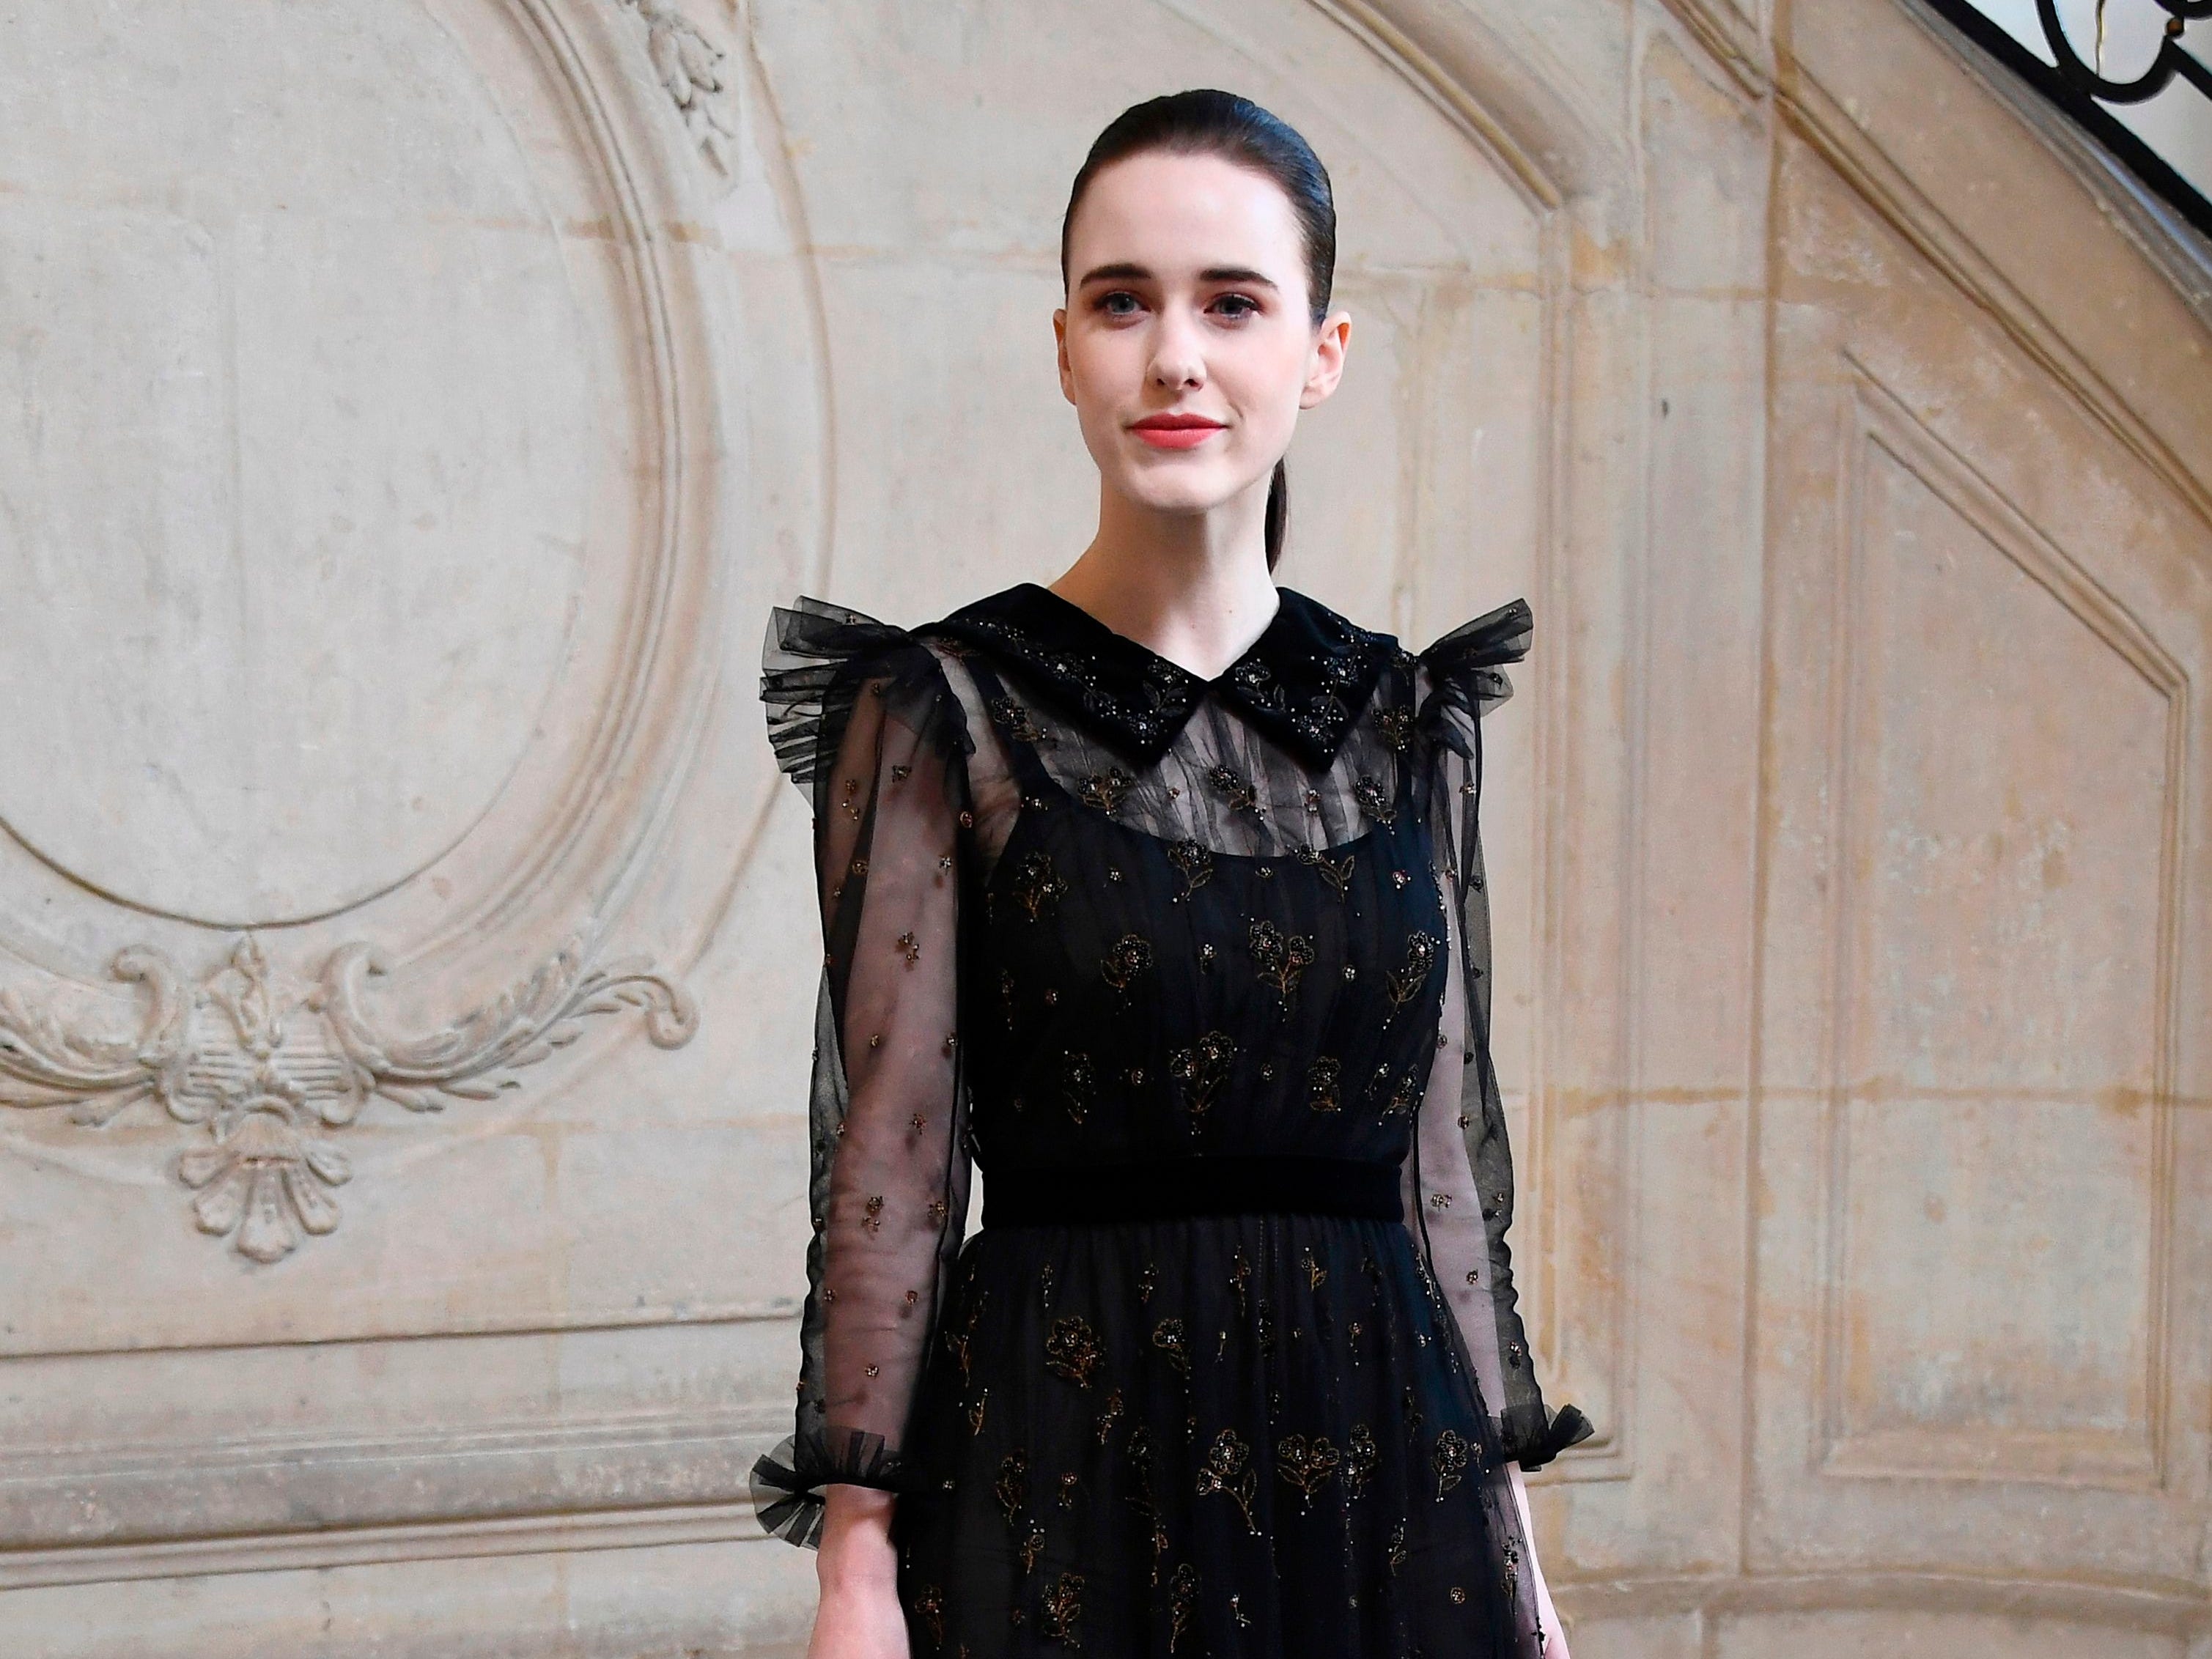 US actress Rachel Brosnahan poses during a photocall prior to the 2019 Spring-Summer Haute Couture collection fashion show by Christian Dior in Paris, on January 21, 2019. (Photo by Anne-Christine POUJOULAT / AFP)ANNE-CHRISTINE POUJOULAT/AFP/Getty Images ORIG FILE ID: AFP_1CG6KG